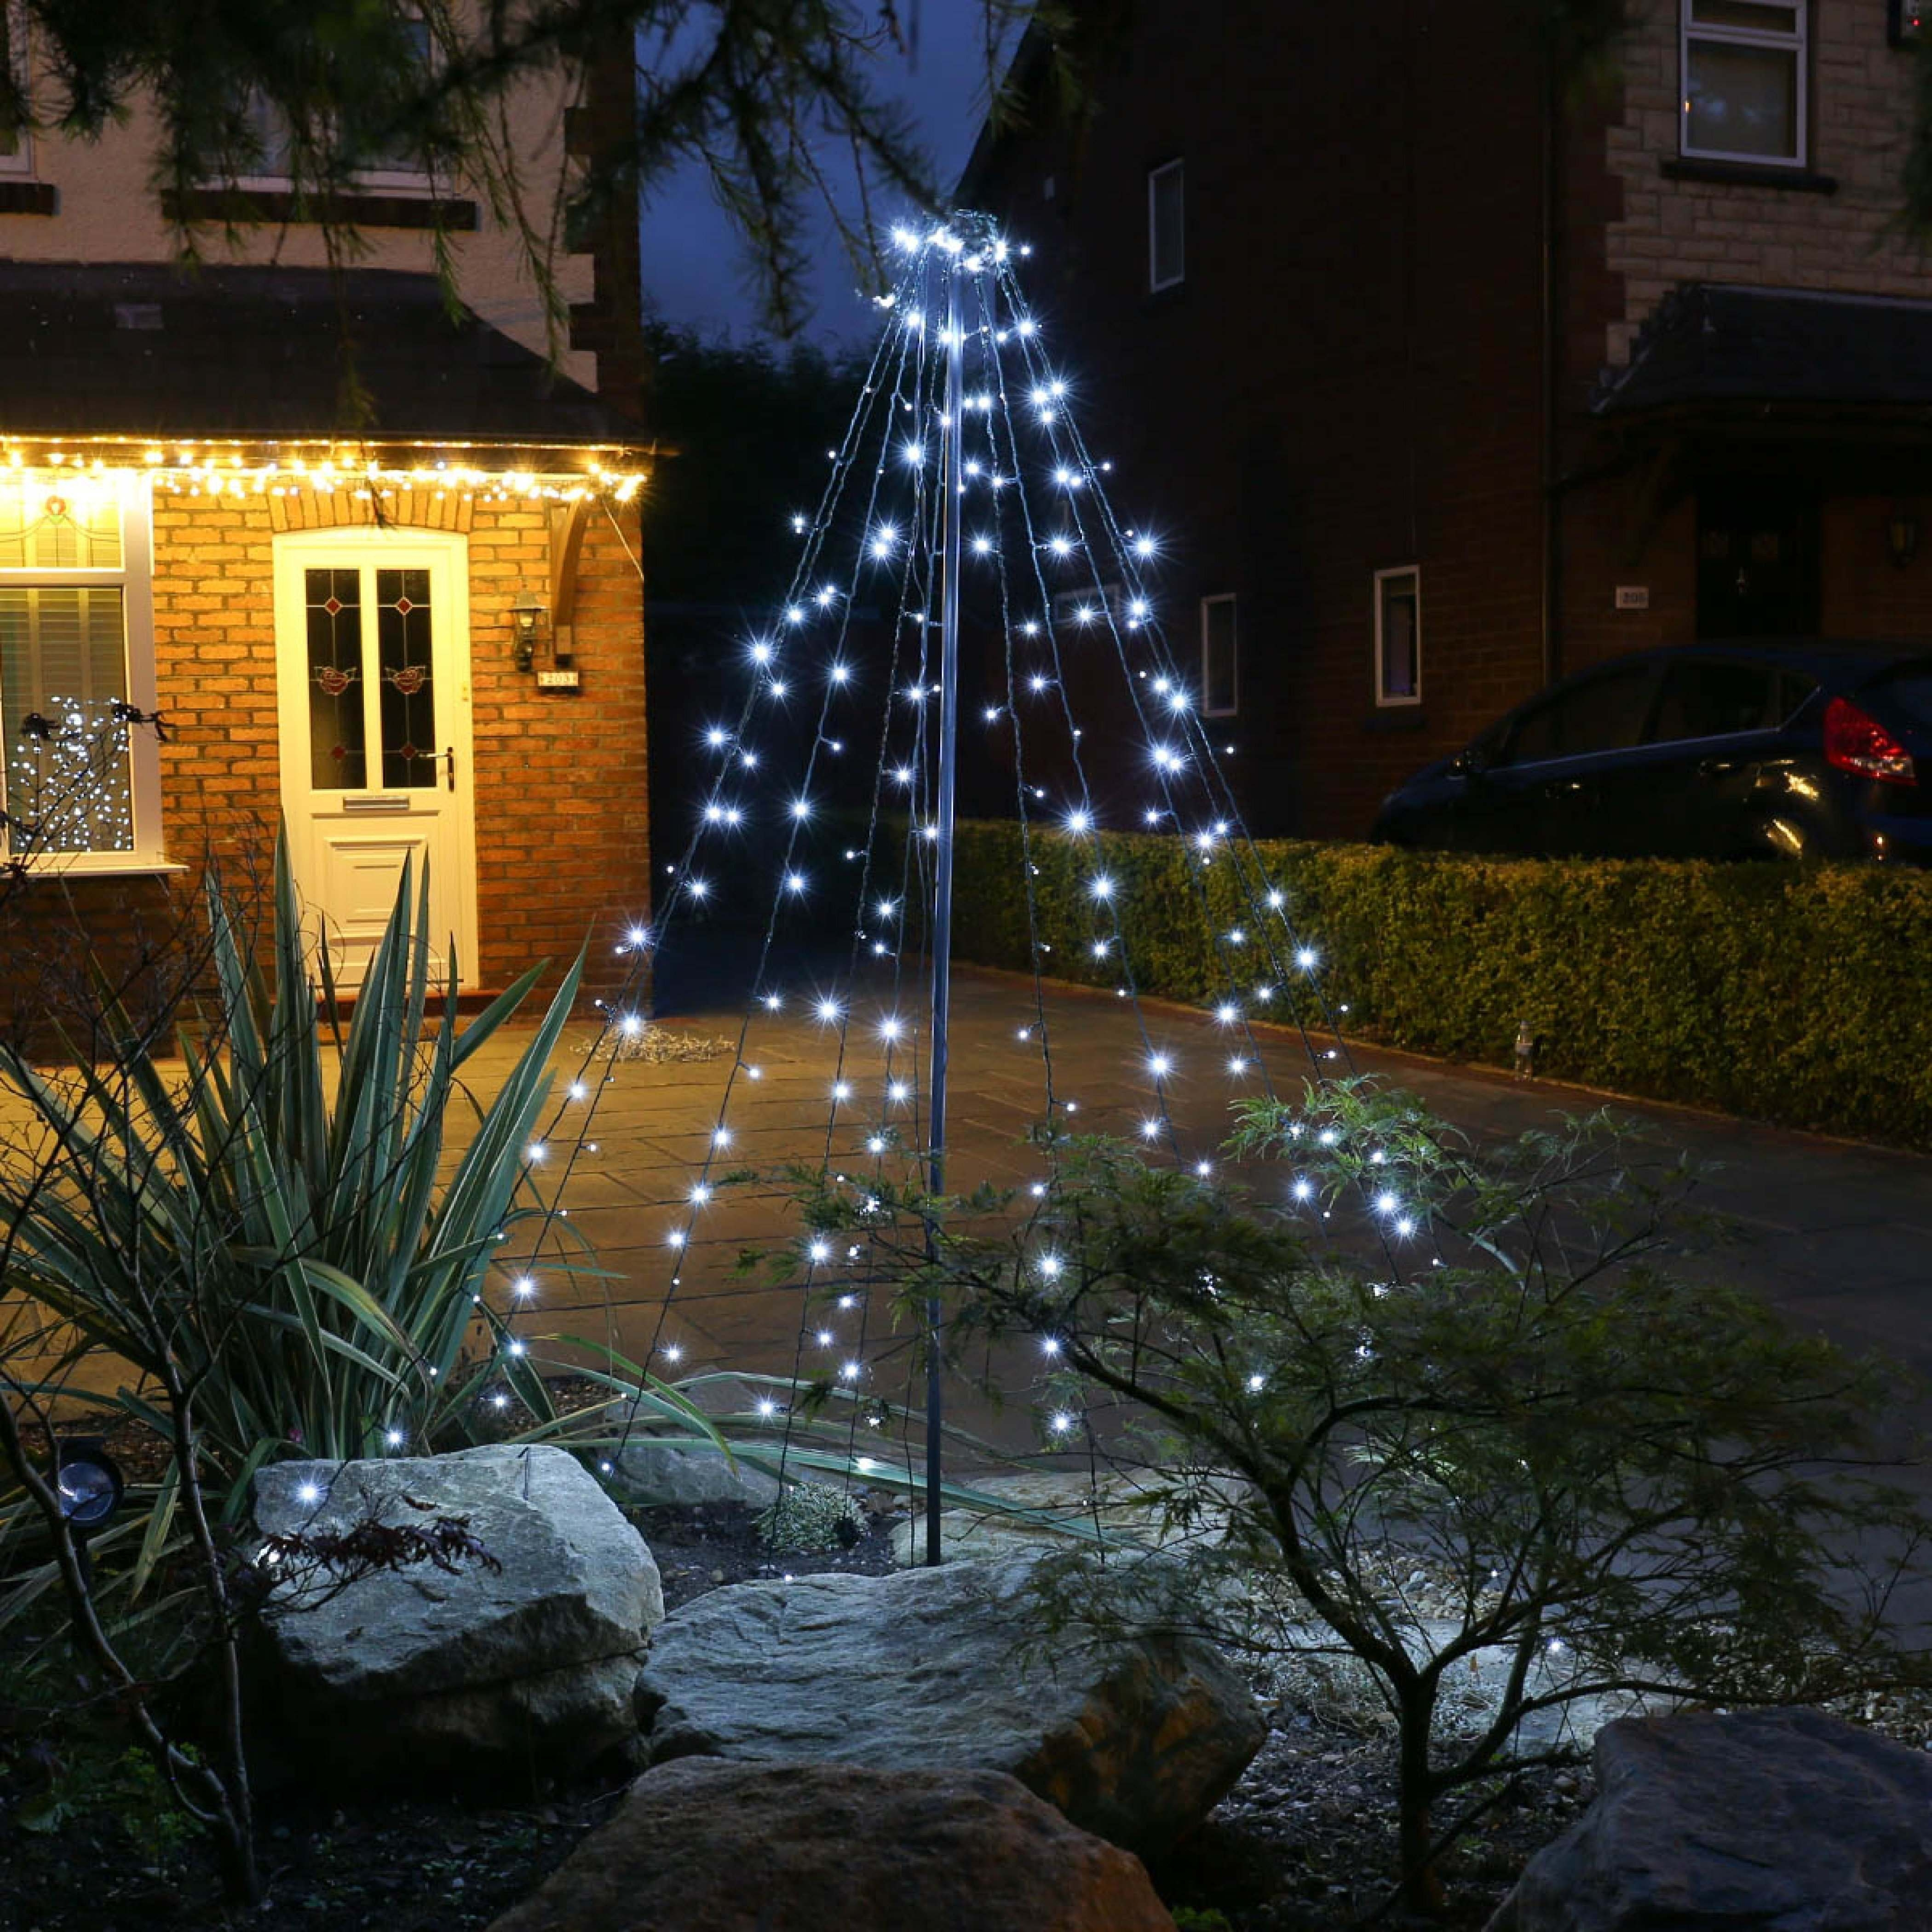 Outdoor Christmas Trees: Buy Now From Festive Lights within Outdoor Lanterns for Trees (Image 14 of 20)